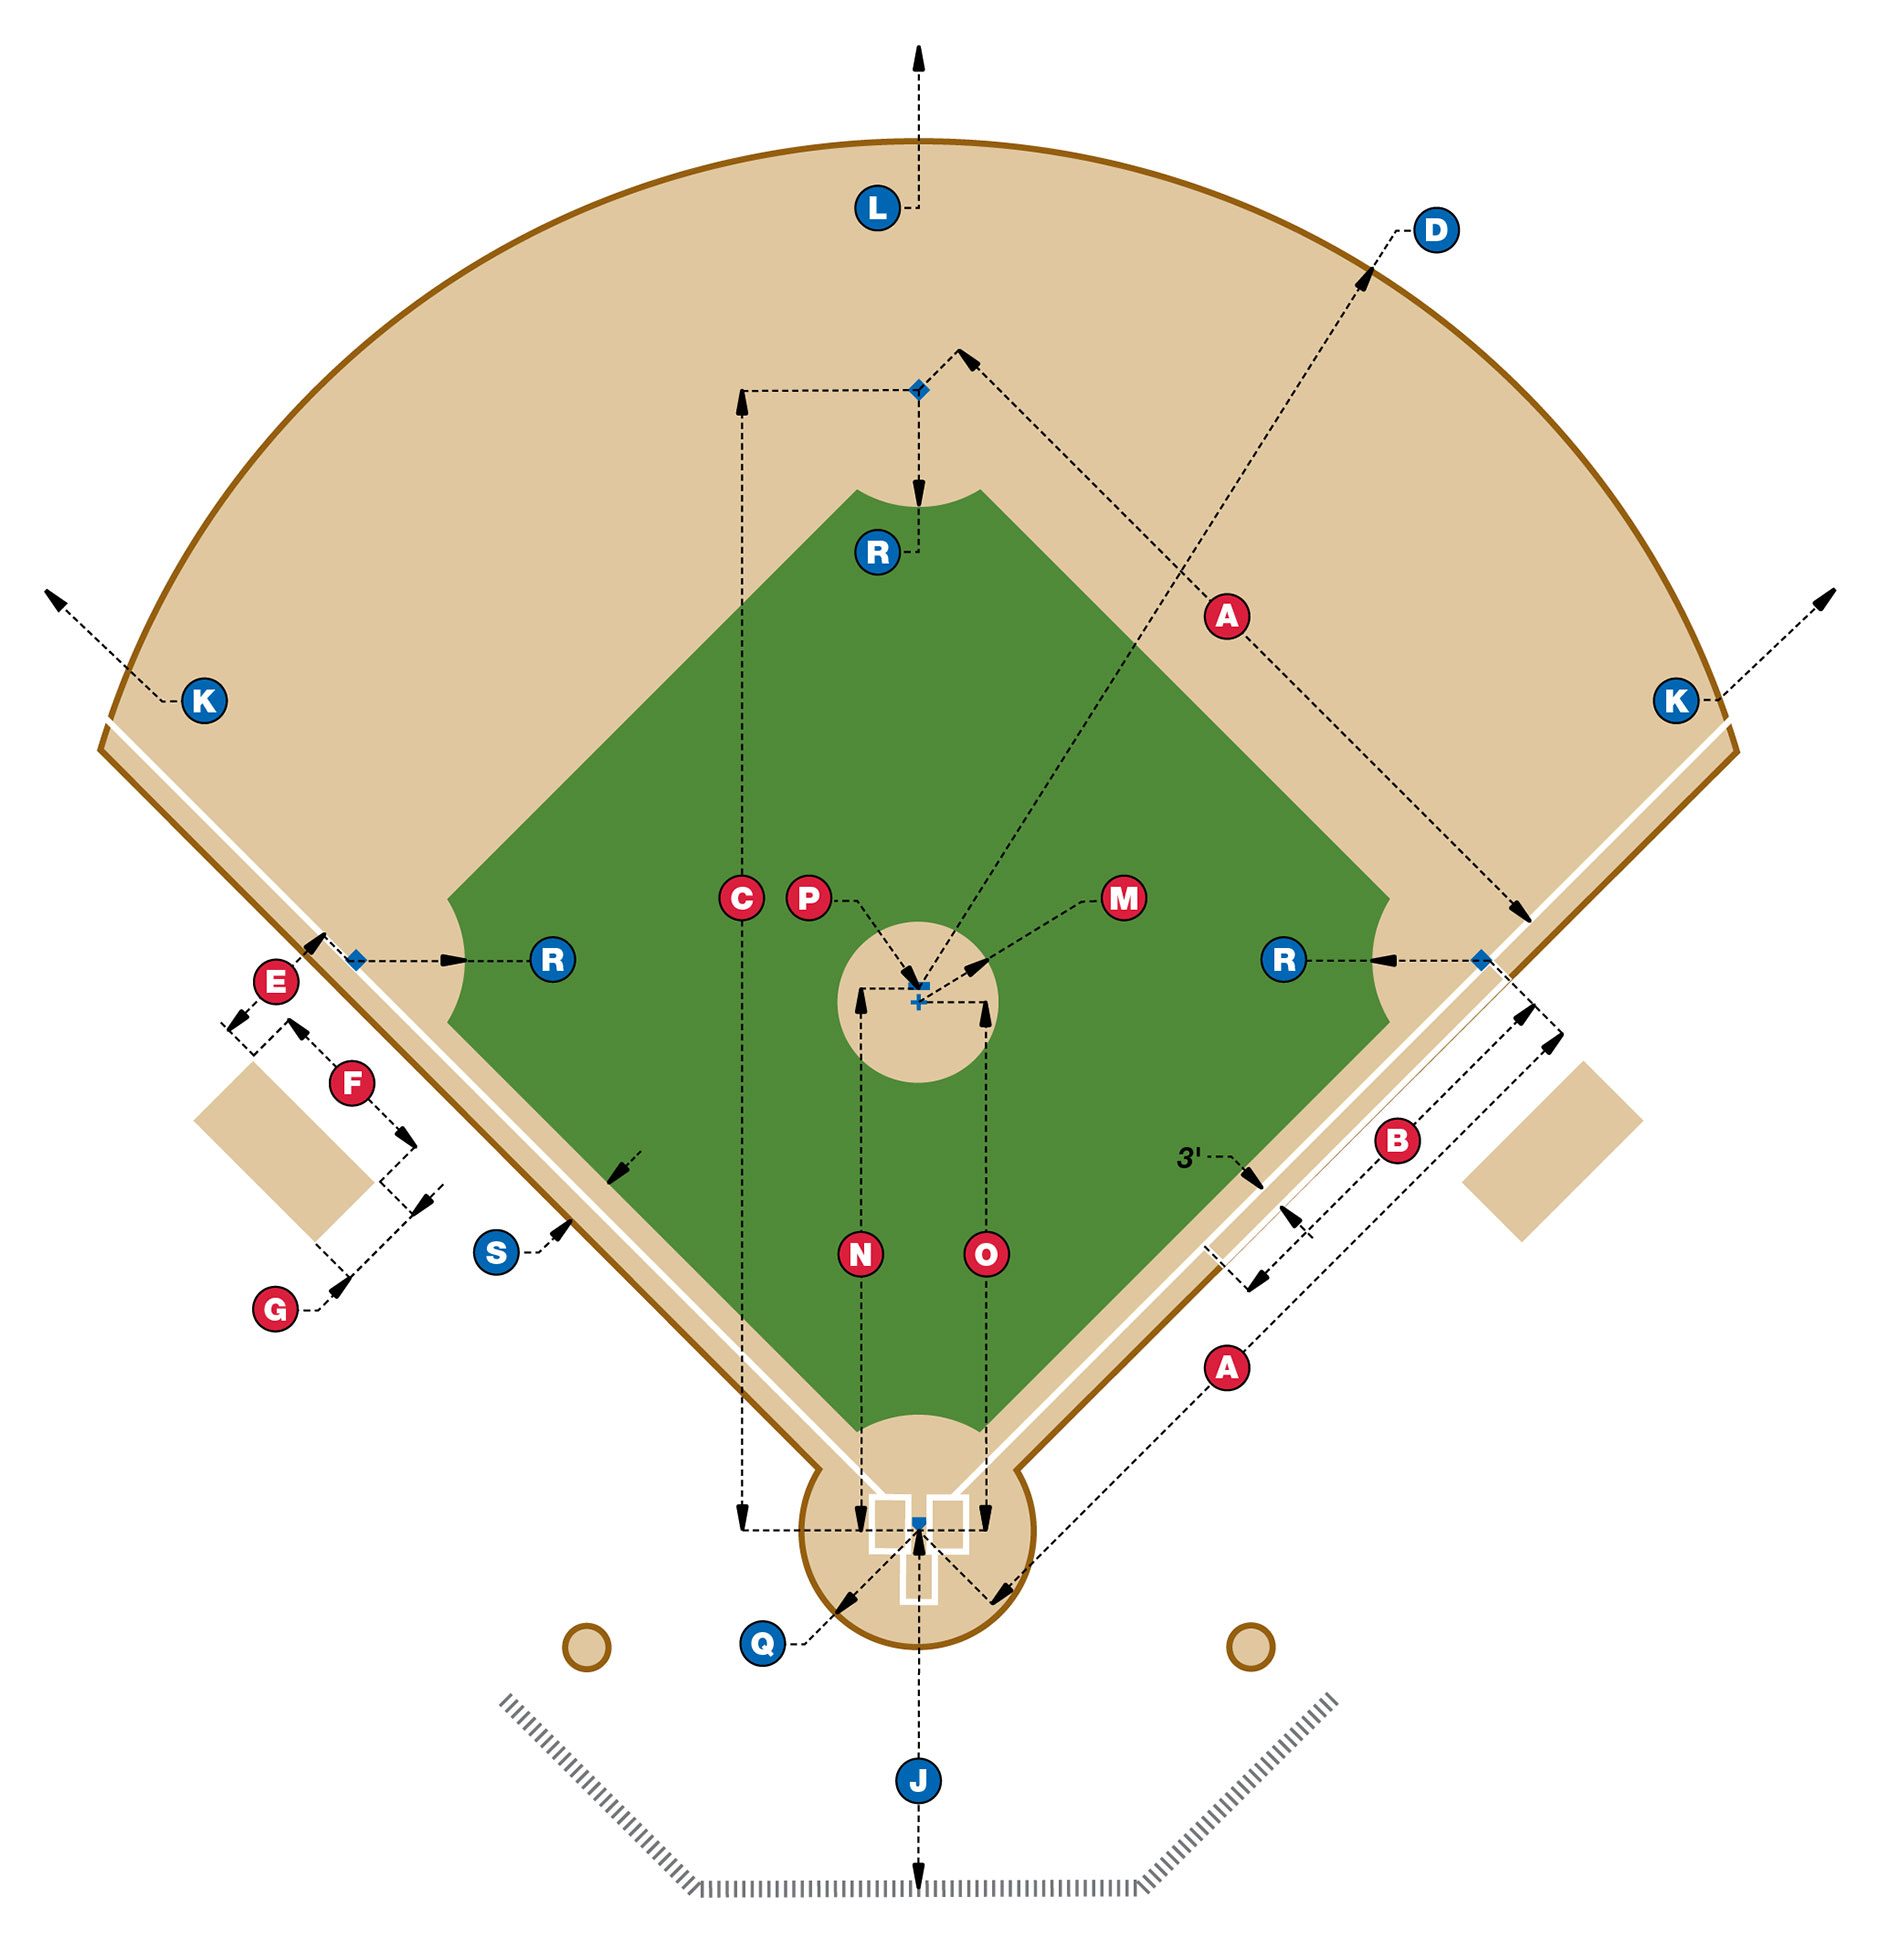 [Diagram of baseball field dimensions]